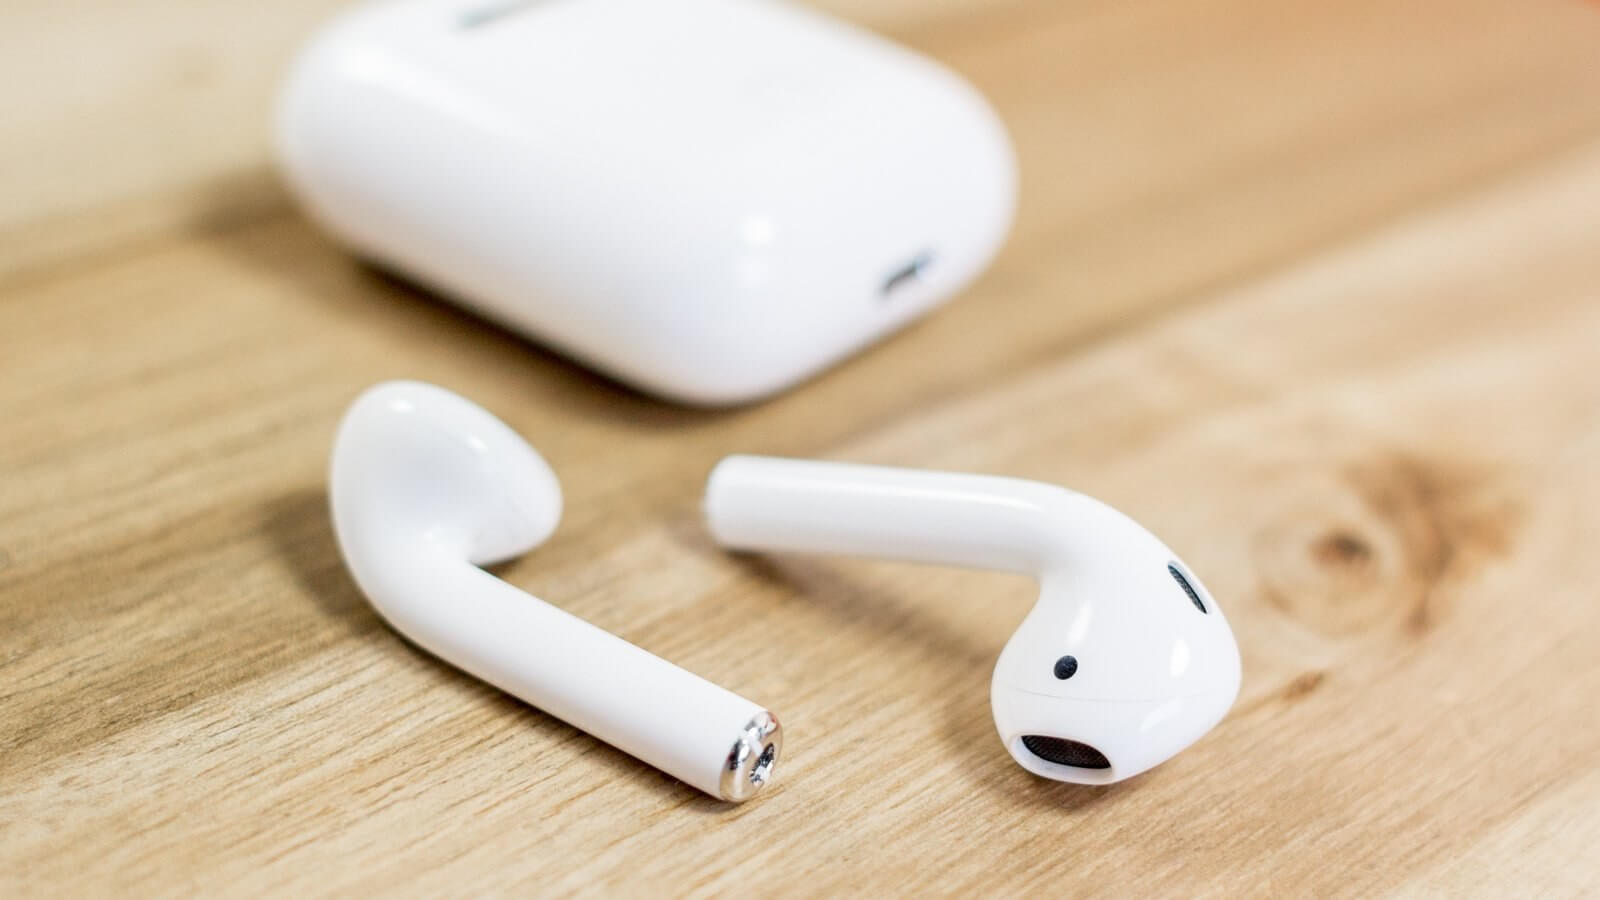 Apple could be planning to launch two new AirPods models by 2020, analyst claims